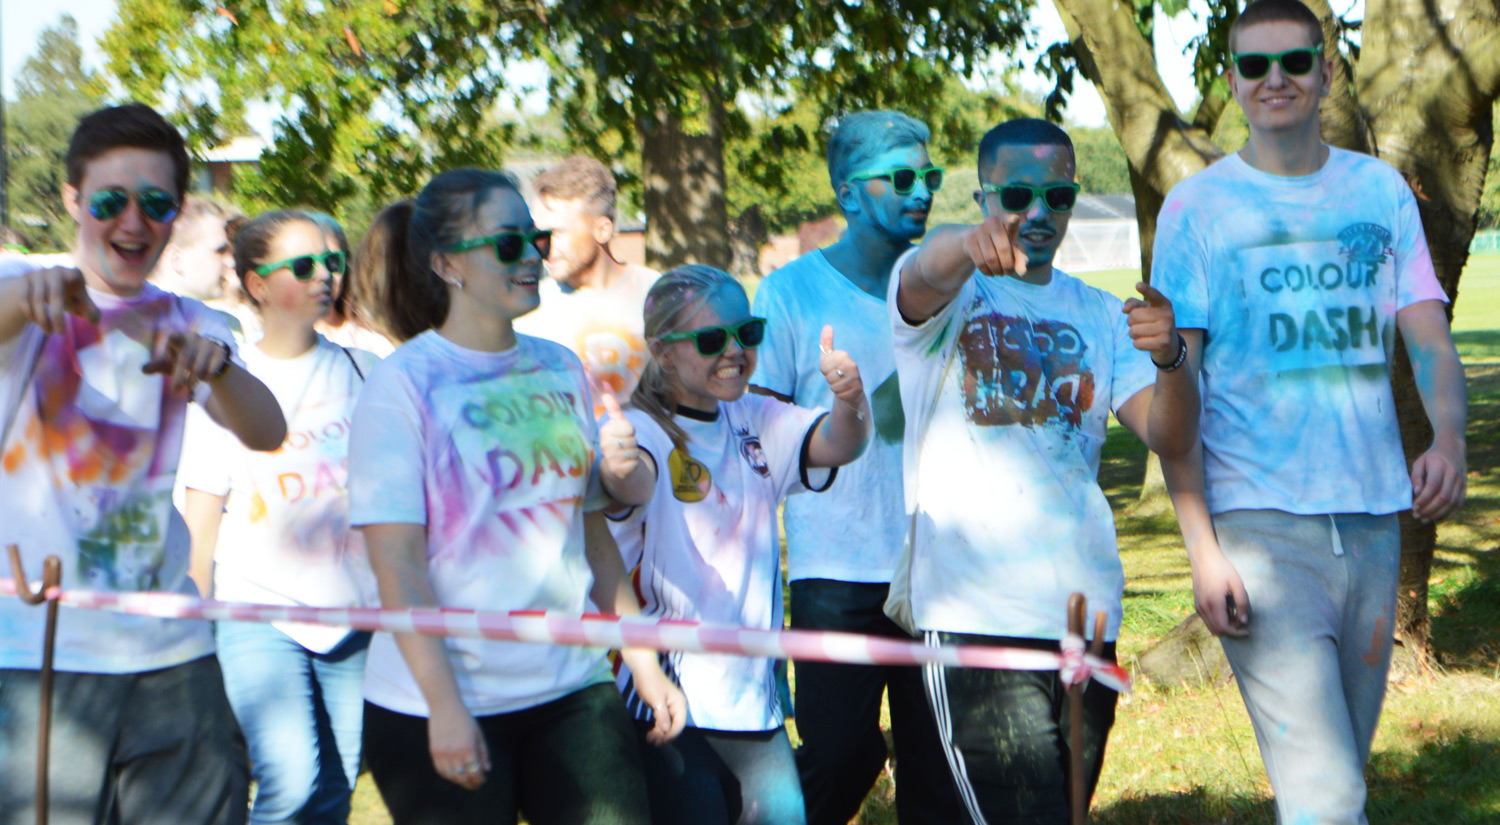 Group of students covered in coloured paints